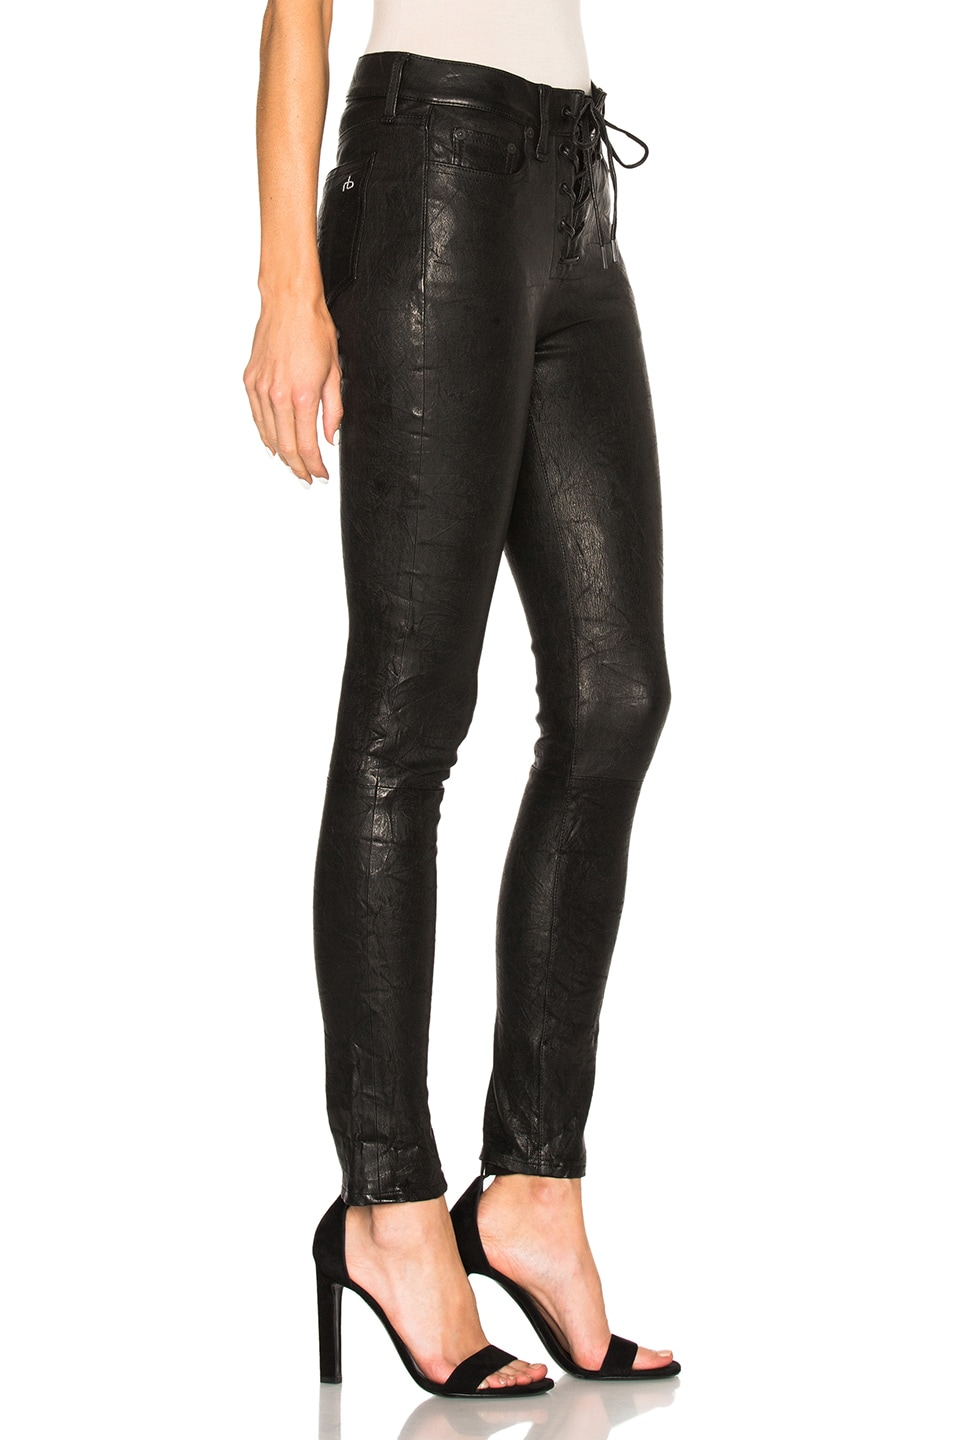 ead94d3934b3a Image 3 of rag & bone/JEAN Lace Up Leather Pants in Washed Black